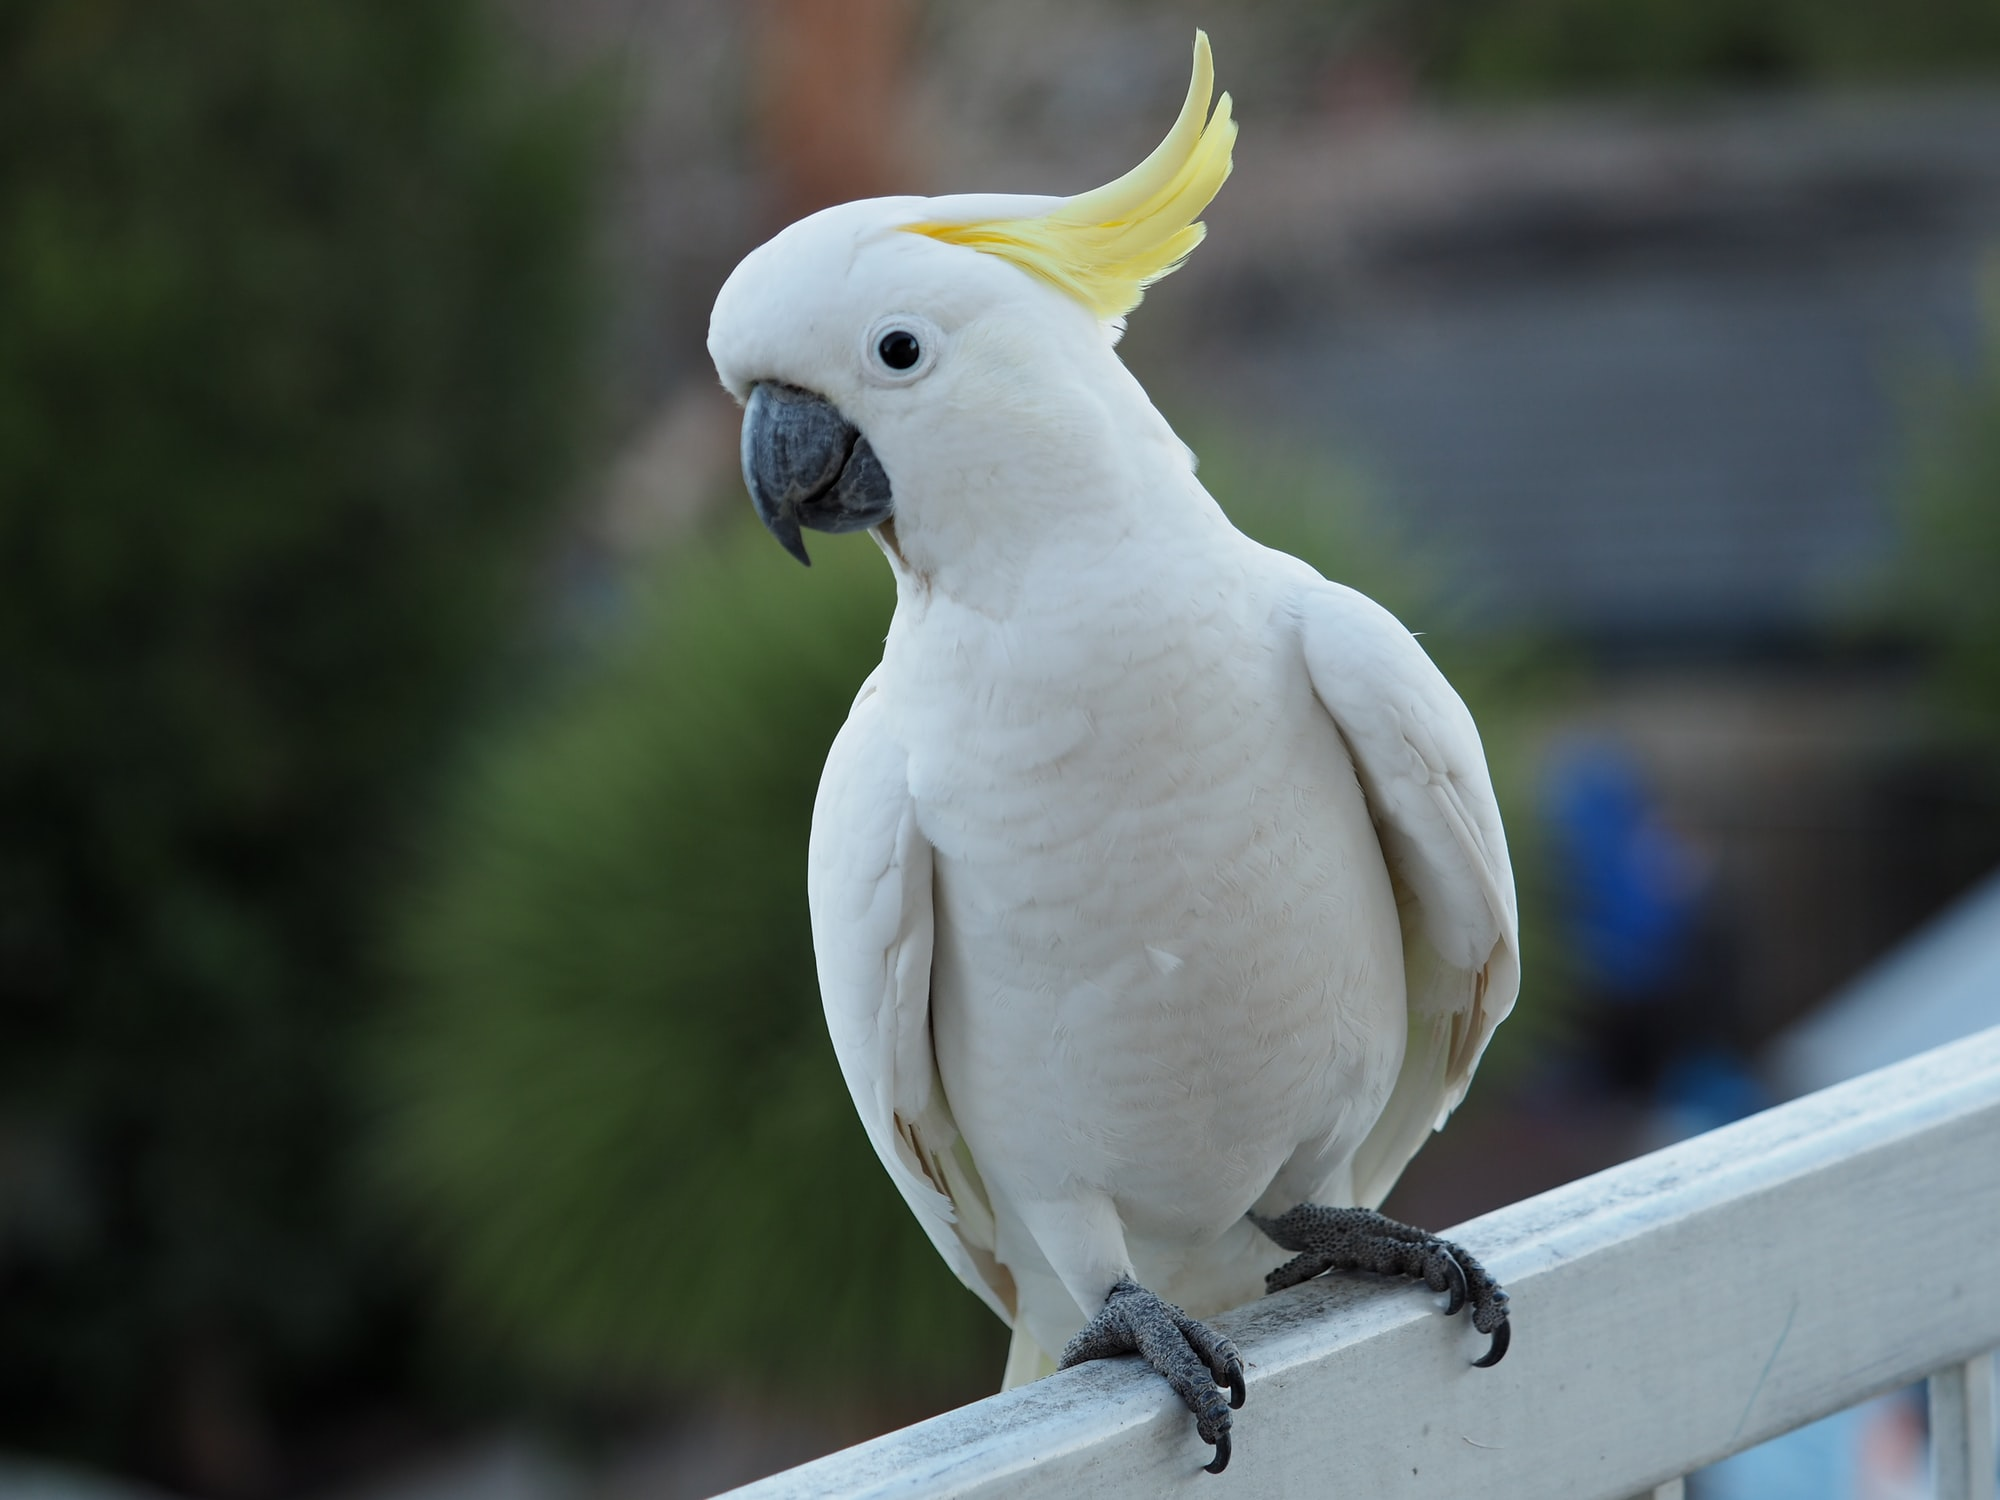 Are you a Buccaneer Parrot?